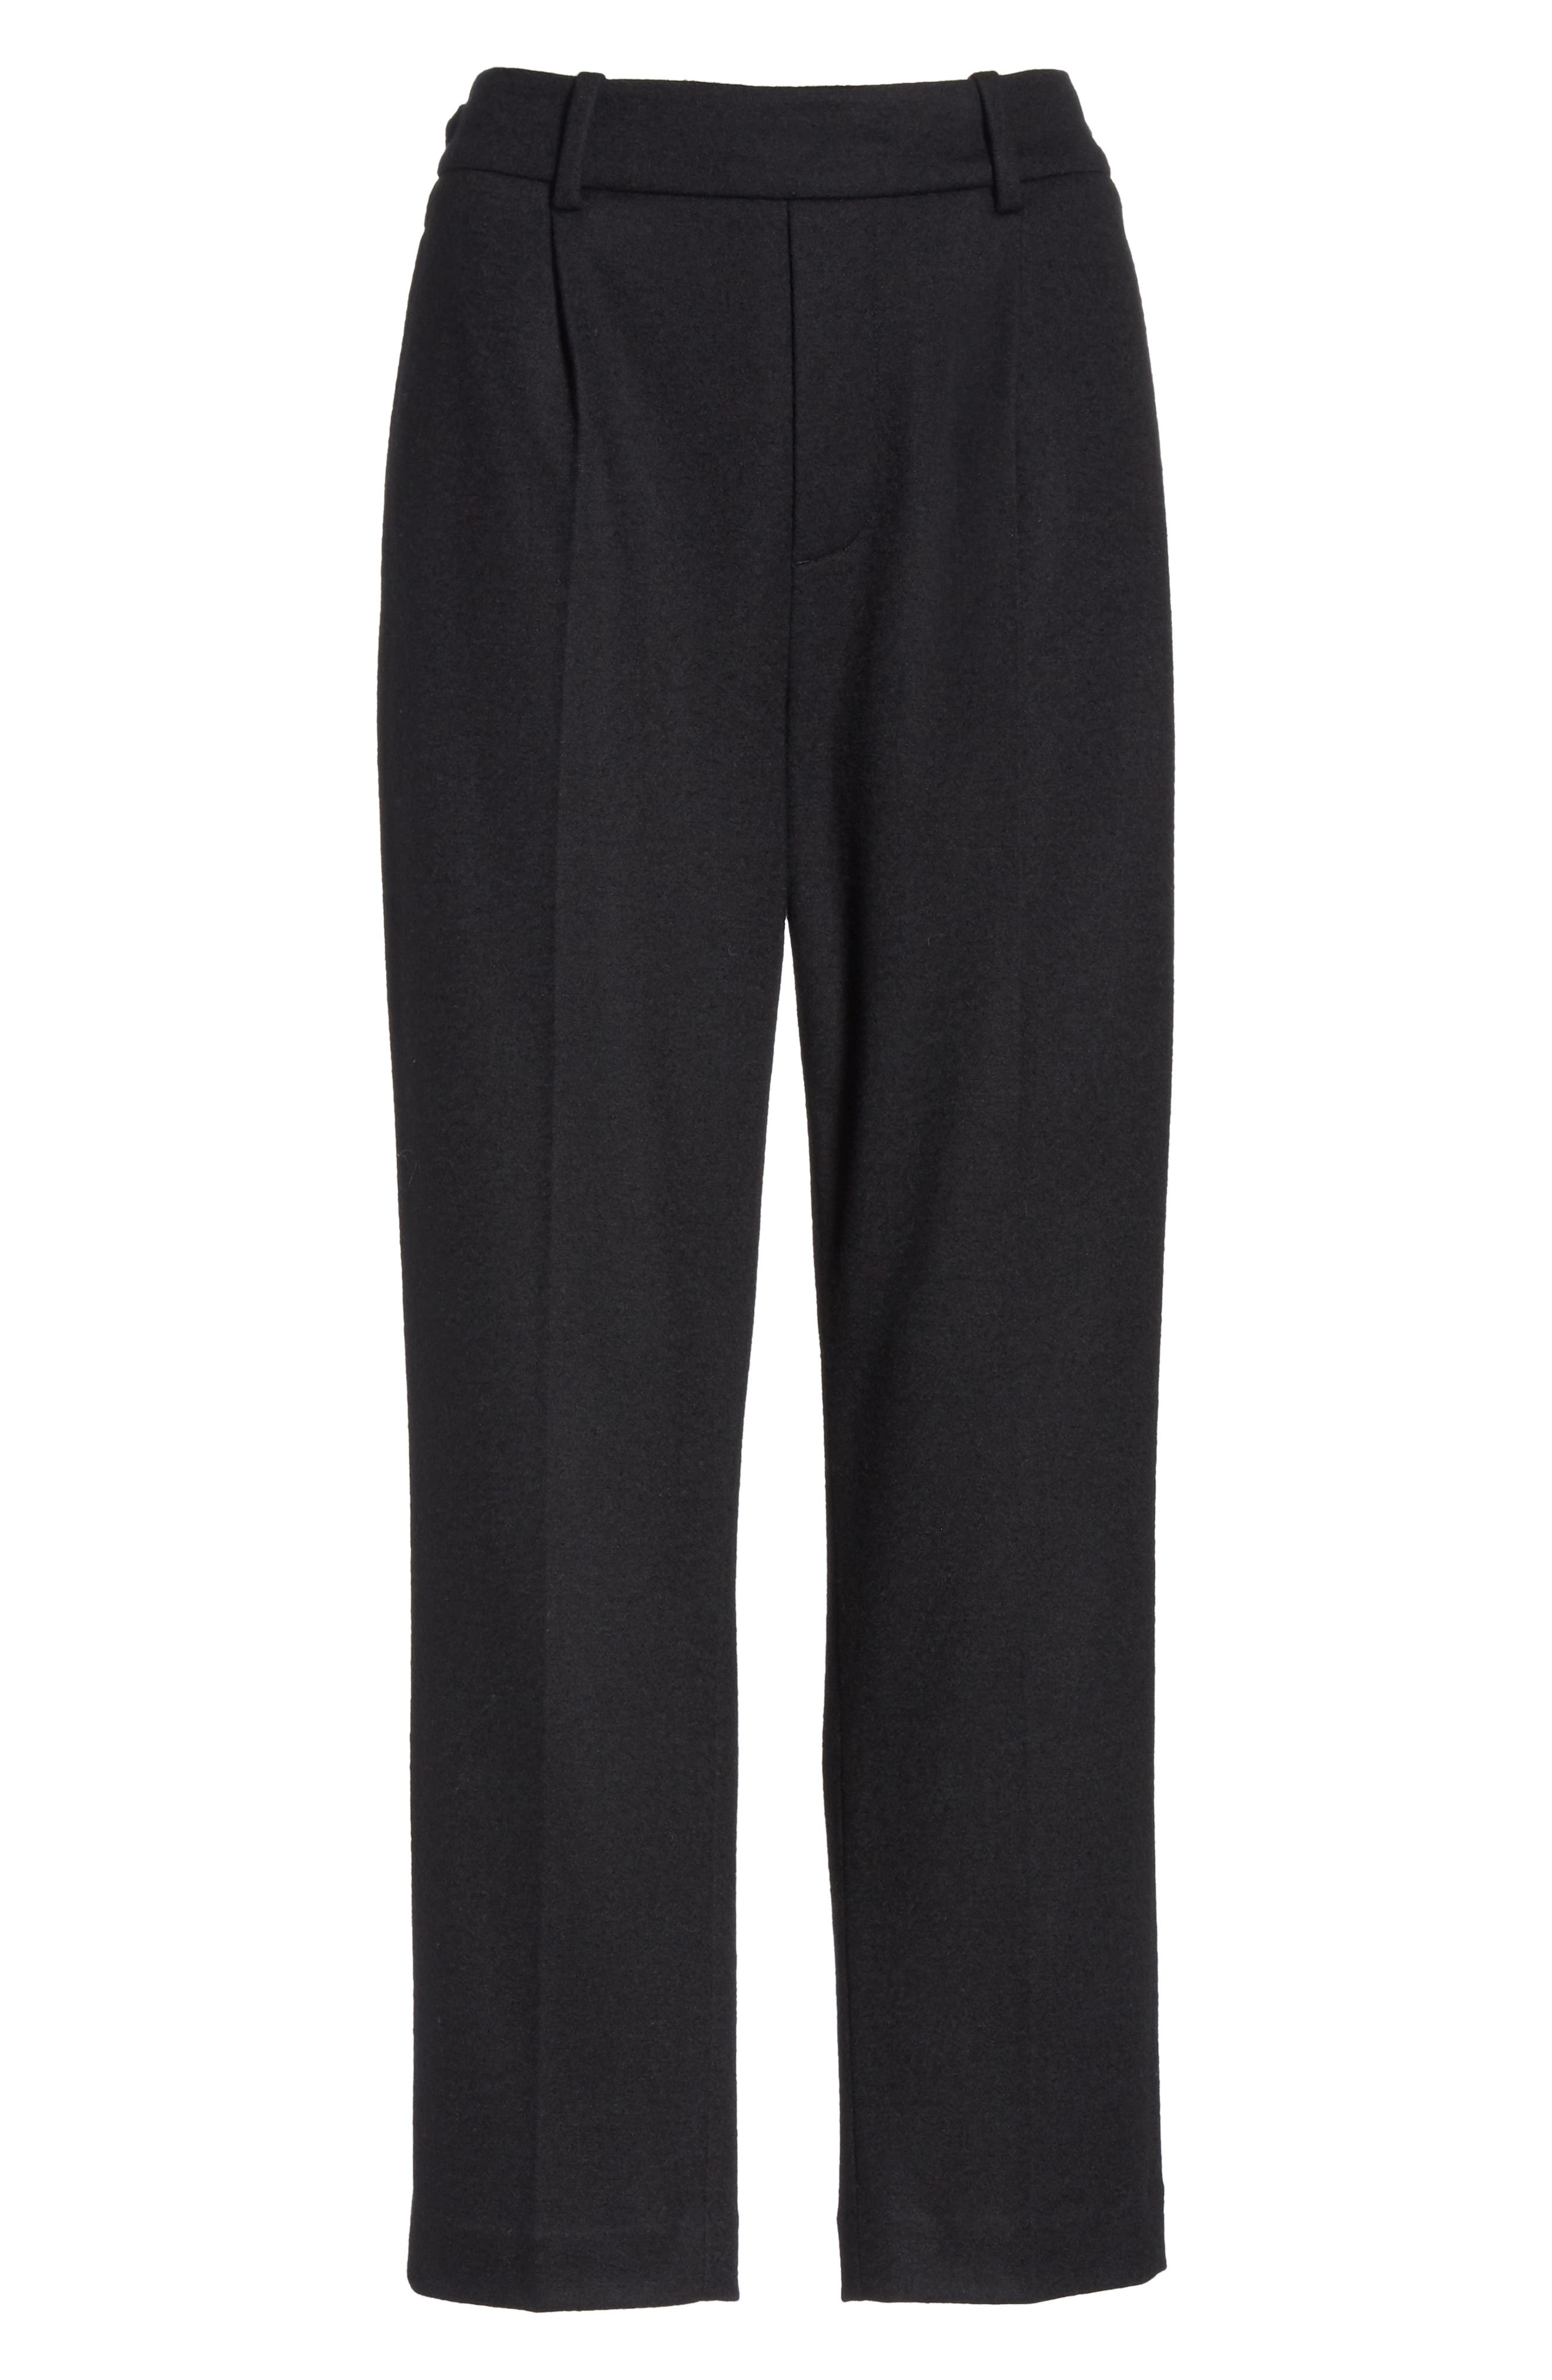 Cropped Pull-On Pants,                             Alternate thumbnail 6, color,                             BLACK